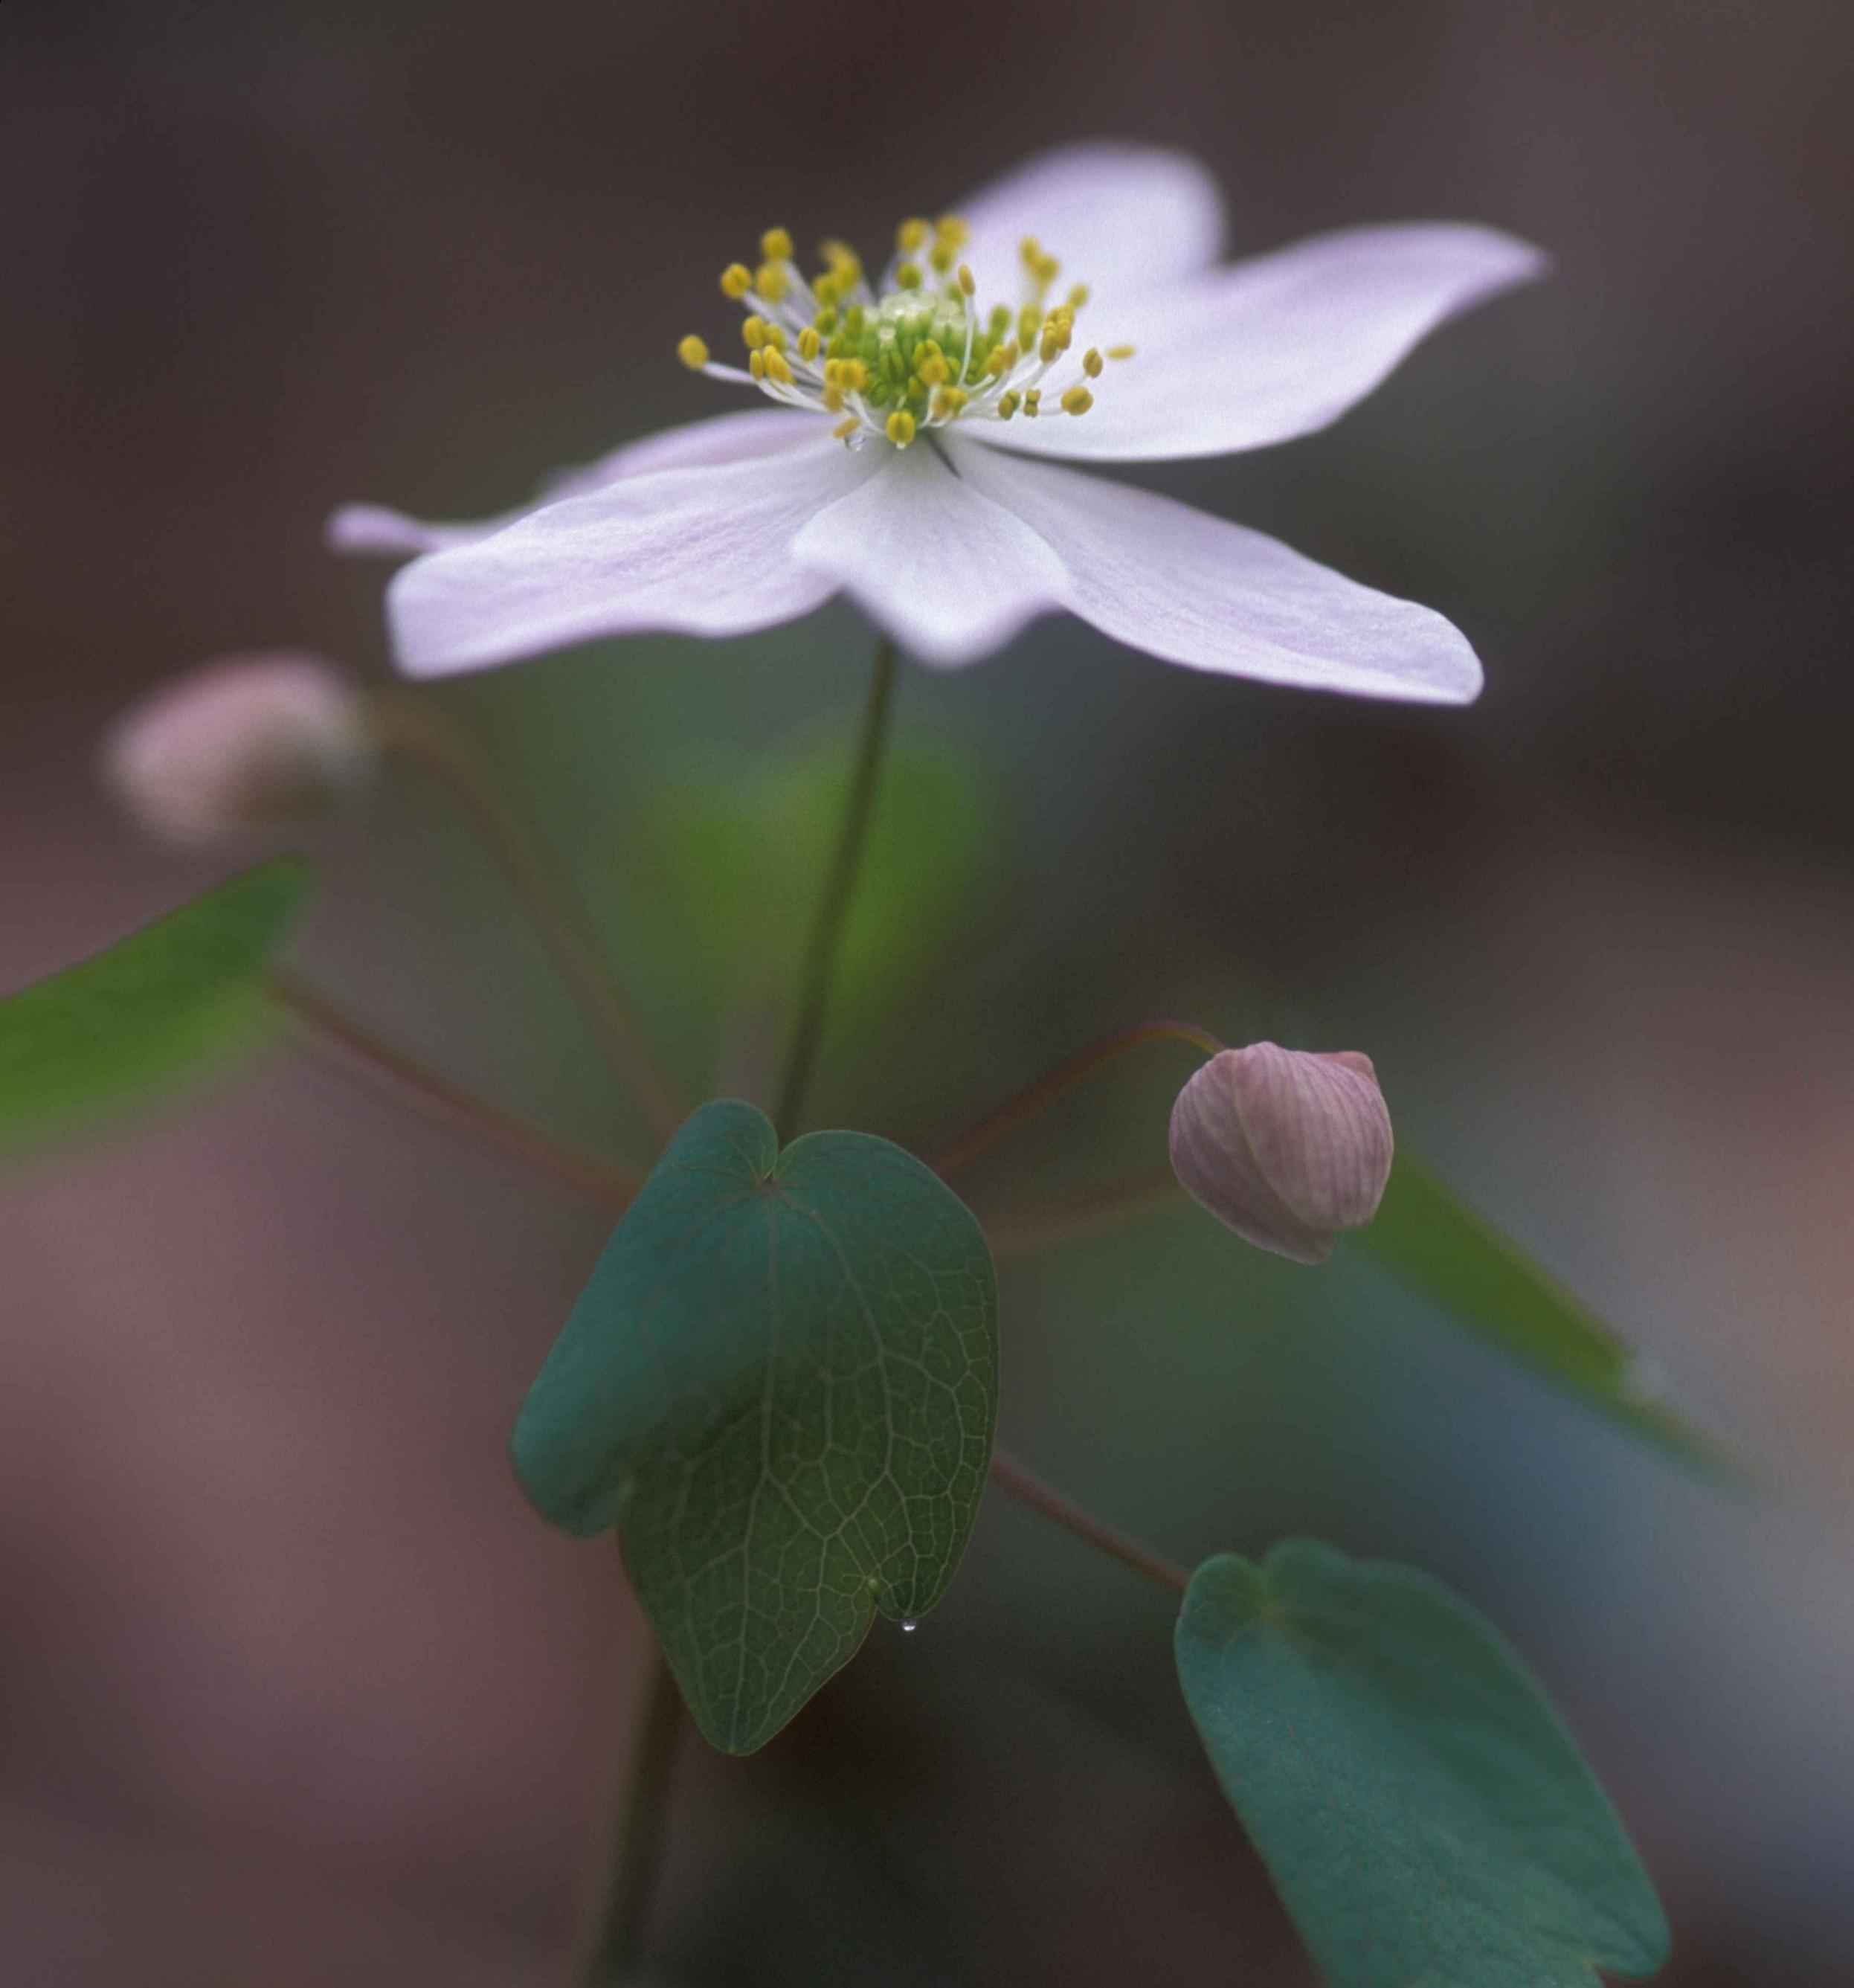 Closeup of a rue anemone